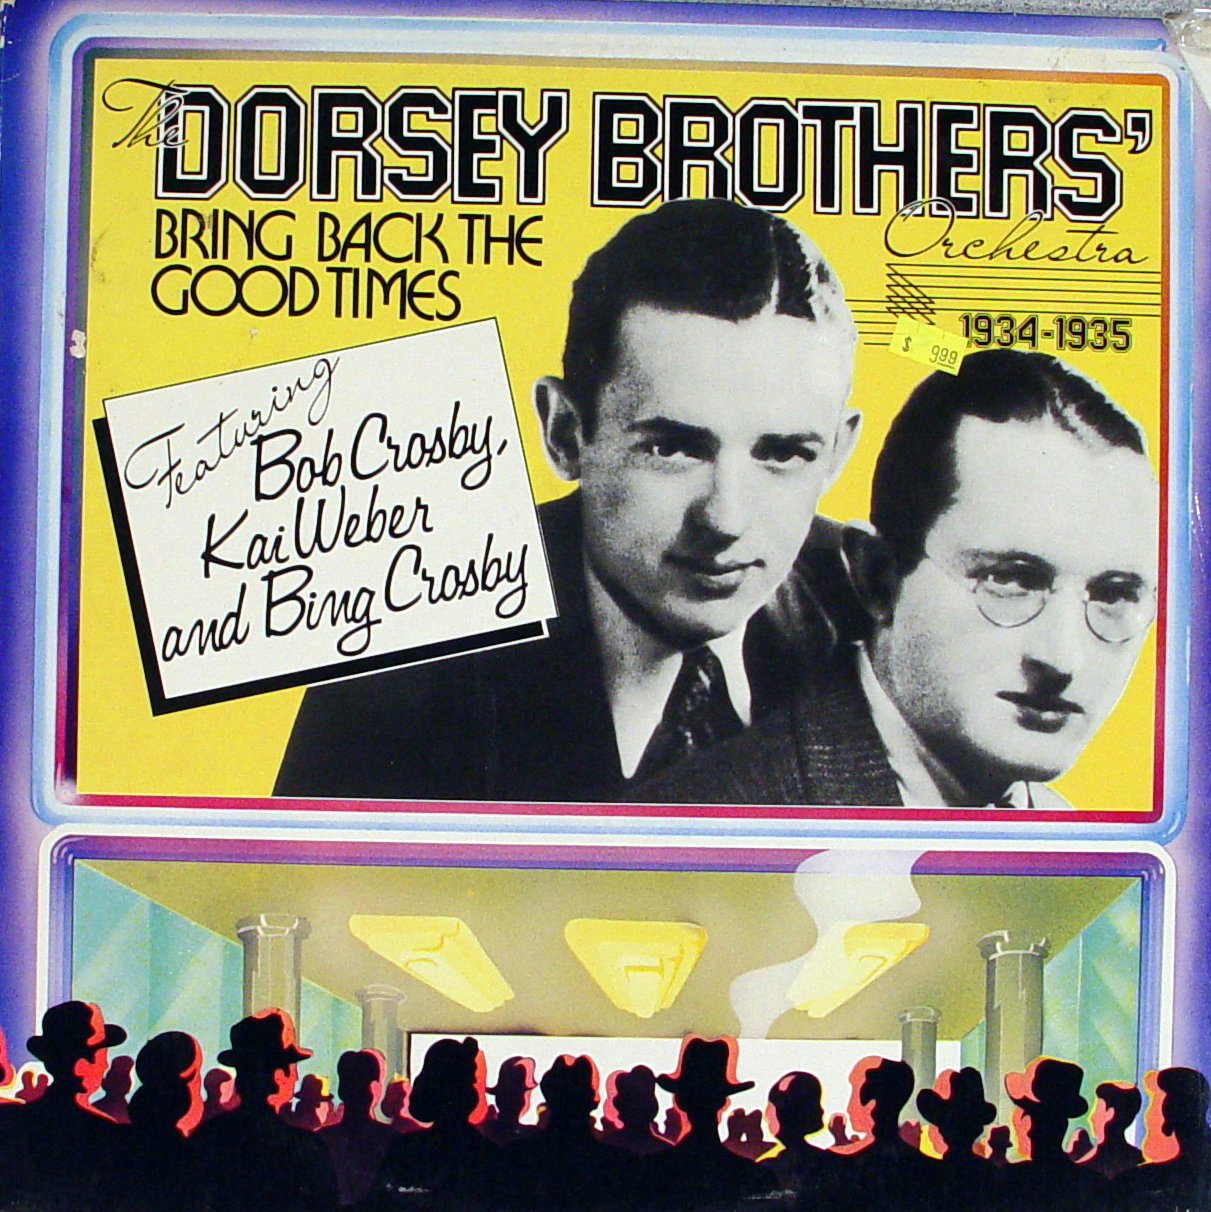 """The Dorsey Brothers Orchestra 1934-1935 Vinyl 12"""" (Used)"""